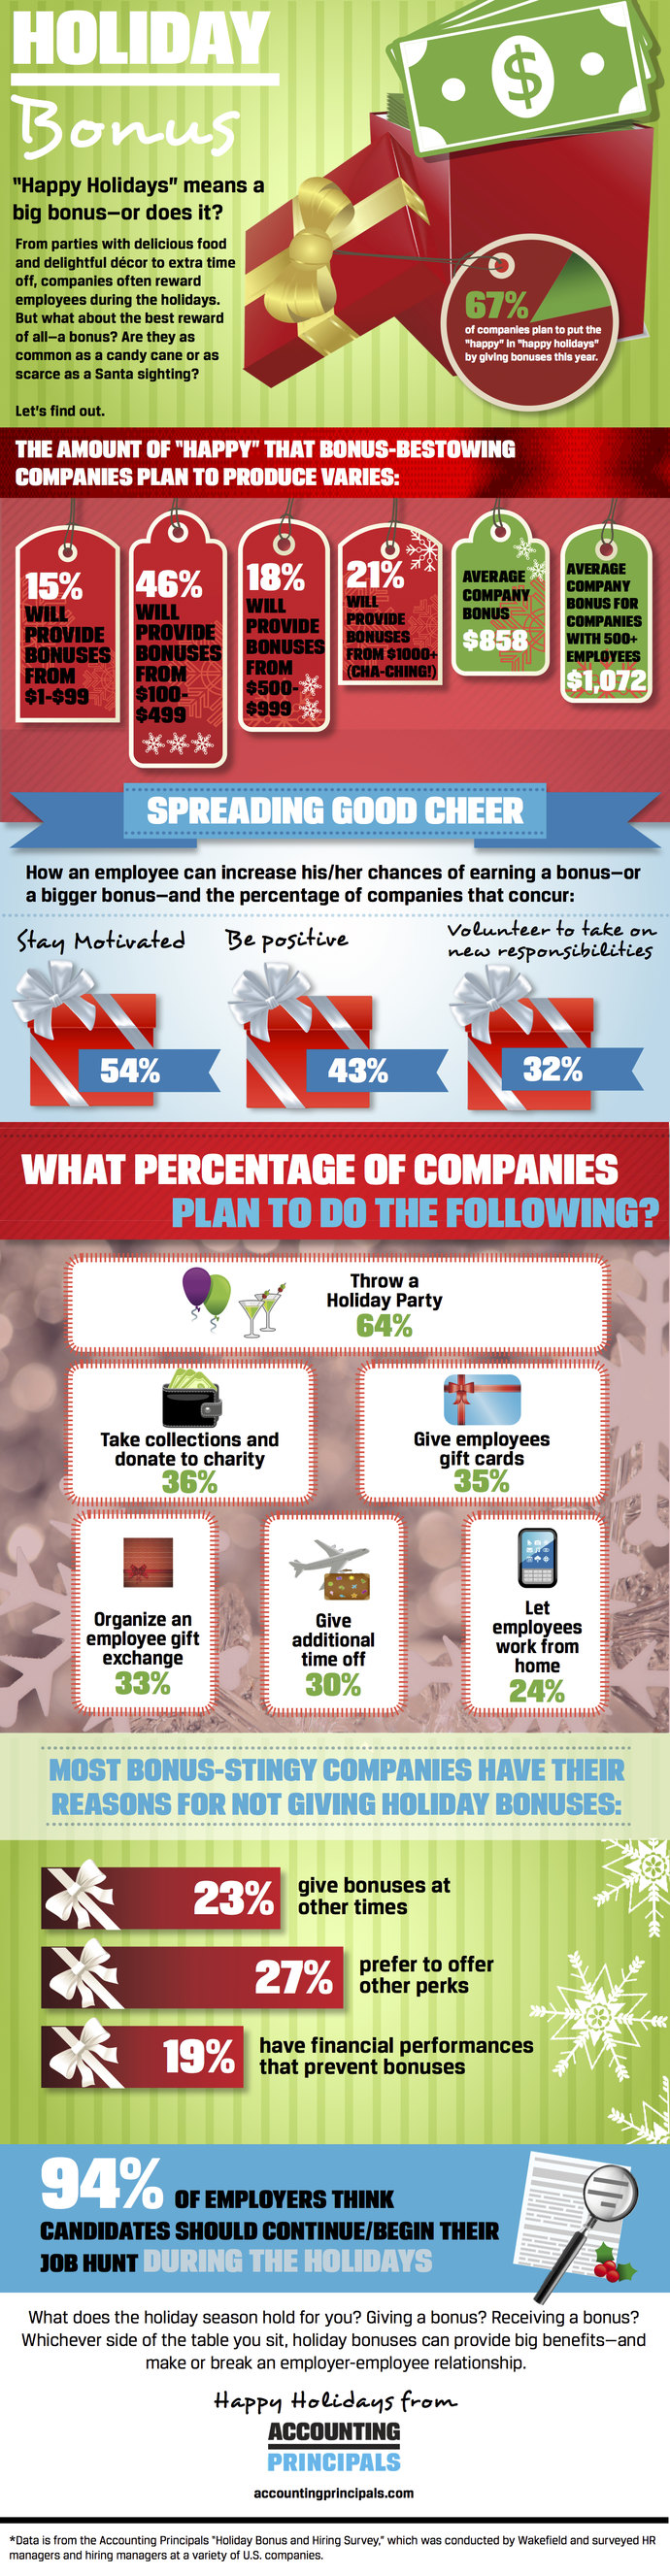 Accounting Principals holiday bonus infographic